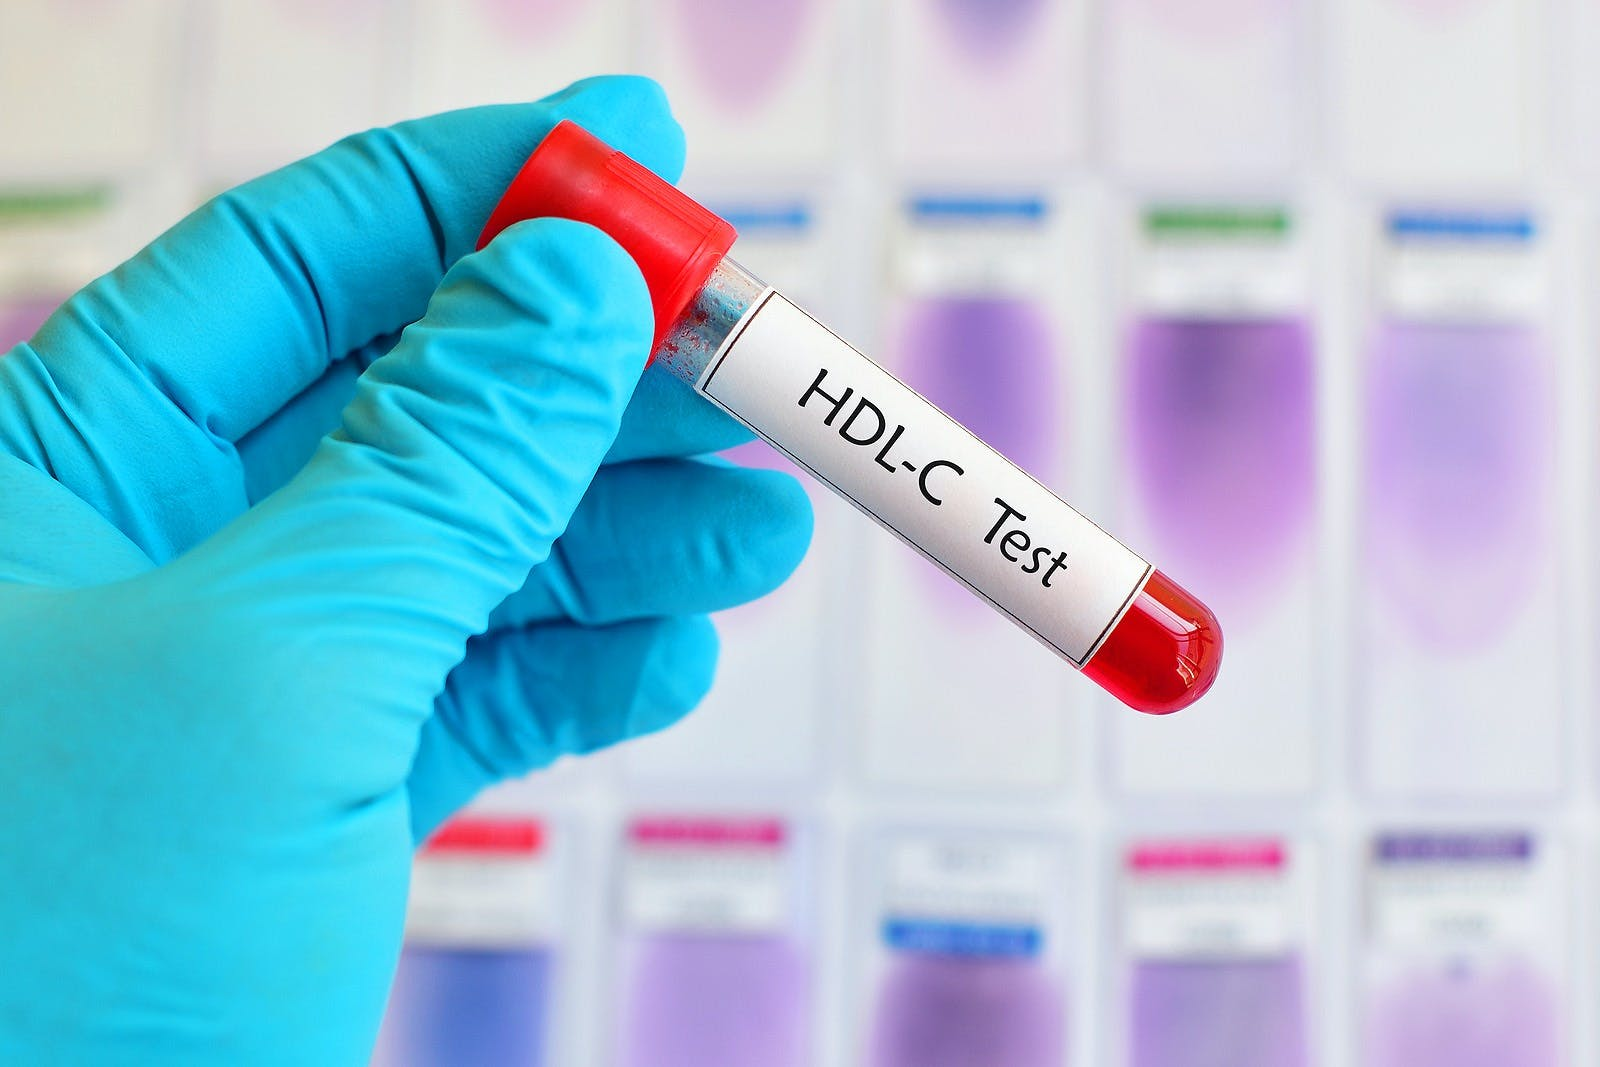 Blood sample for HDL (High-Density Lipoprotein cholesterol) test